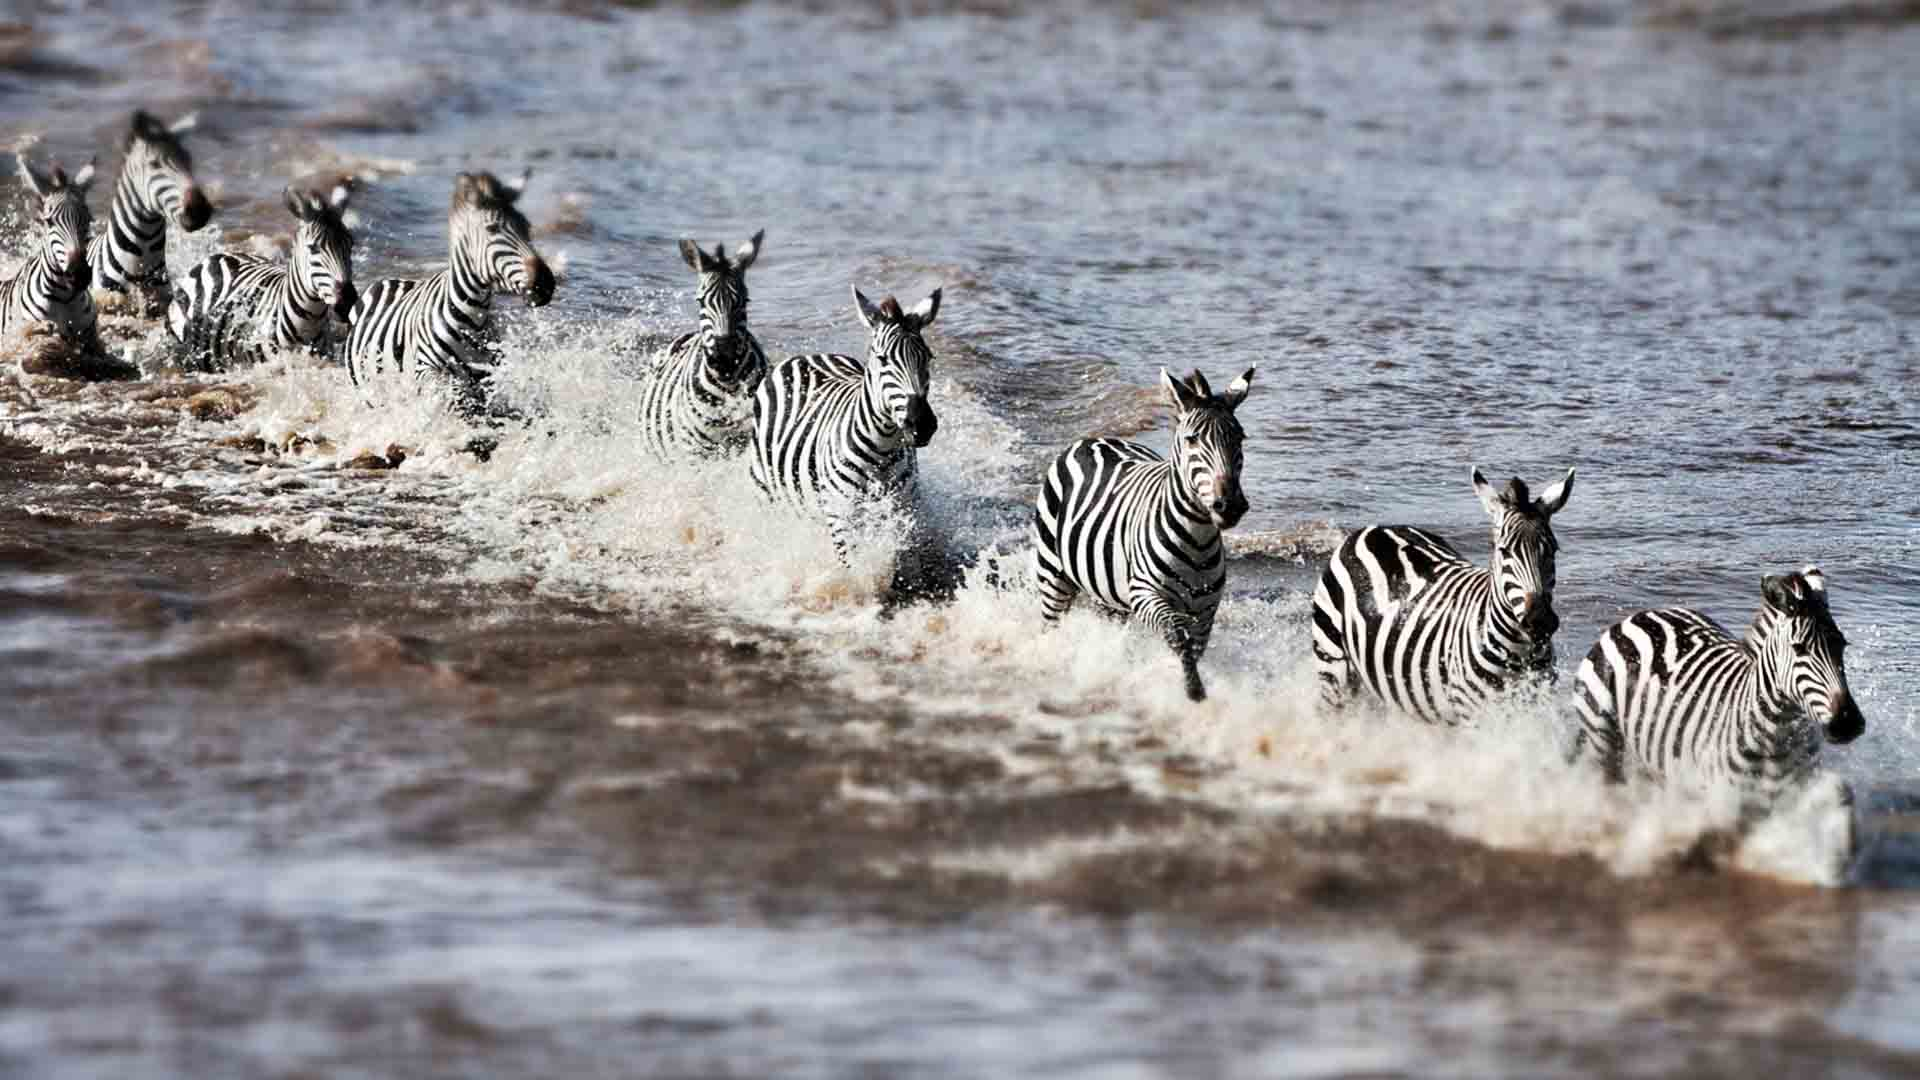 Kenya safari: running zebra